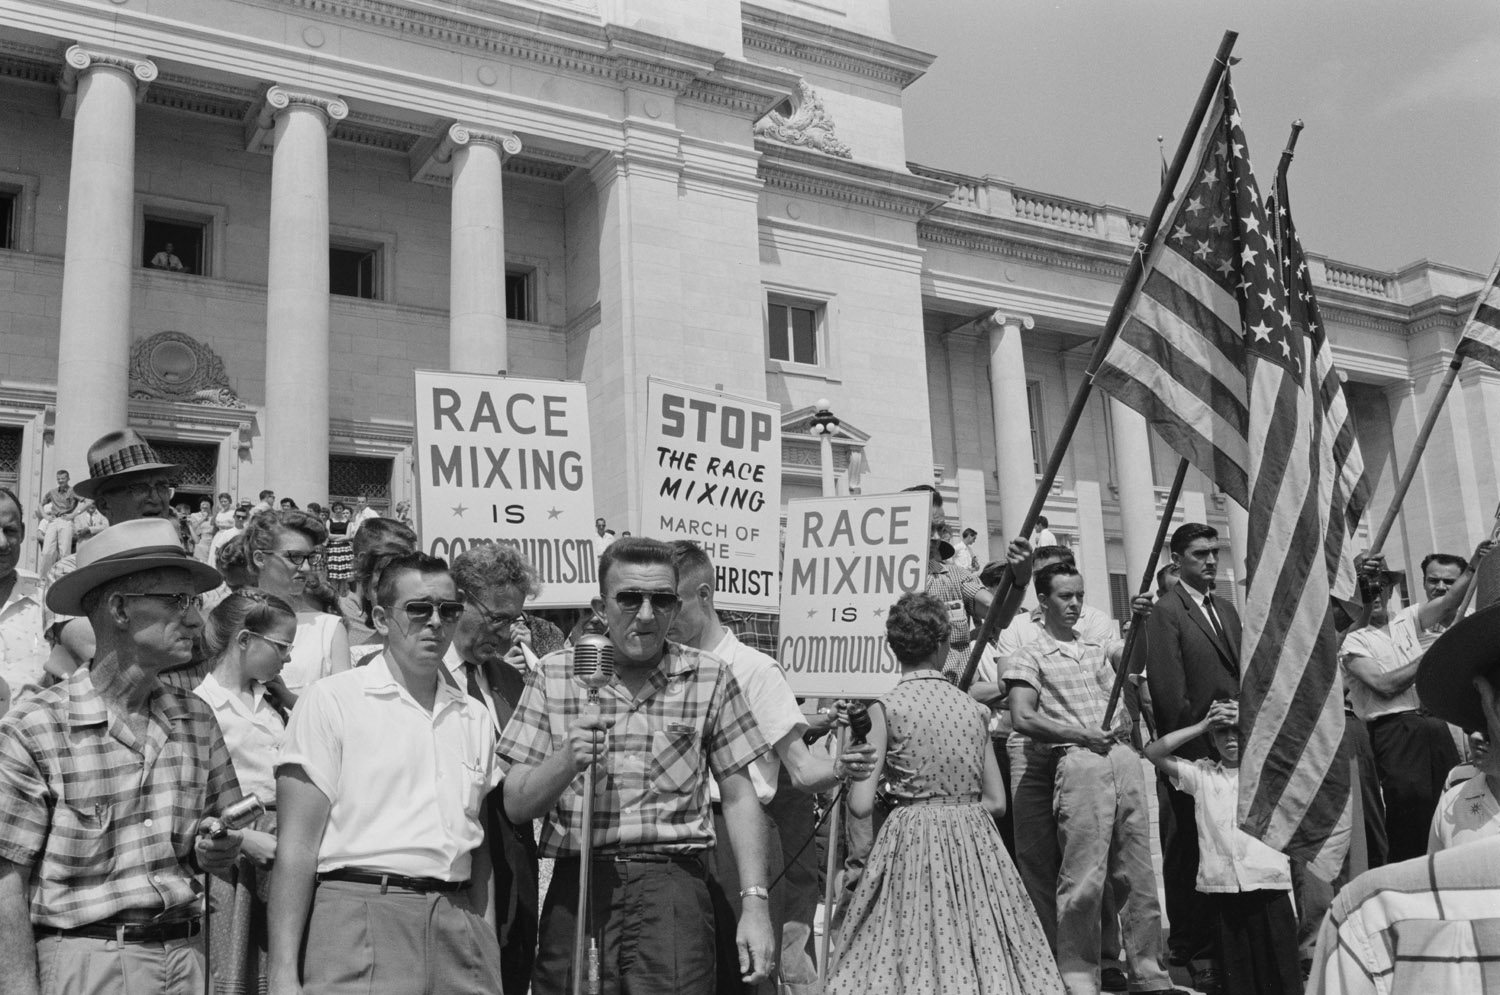 racial discrimination in america during the 1950s President roosevelt issues executive order 8802 banning racial discrimination in hiring of government of defense industry during world war ii (schuman et al, 54) florida - voting rights protected [statute.